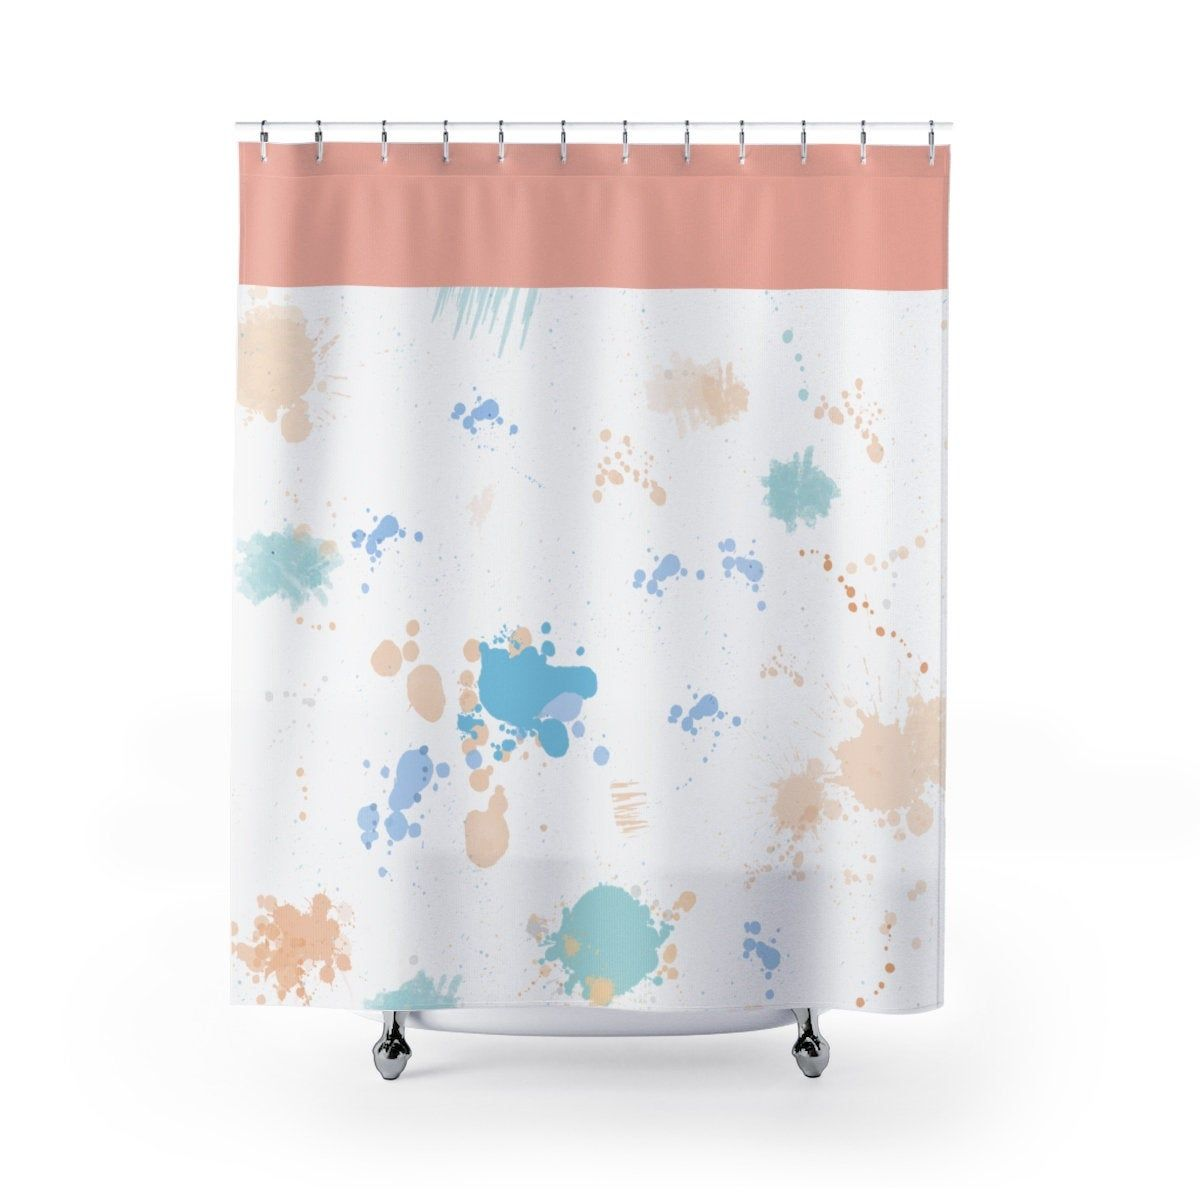 Colorful Shower Curtain Paint Stains Desogned Colorful Shower